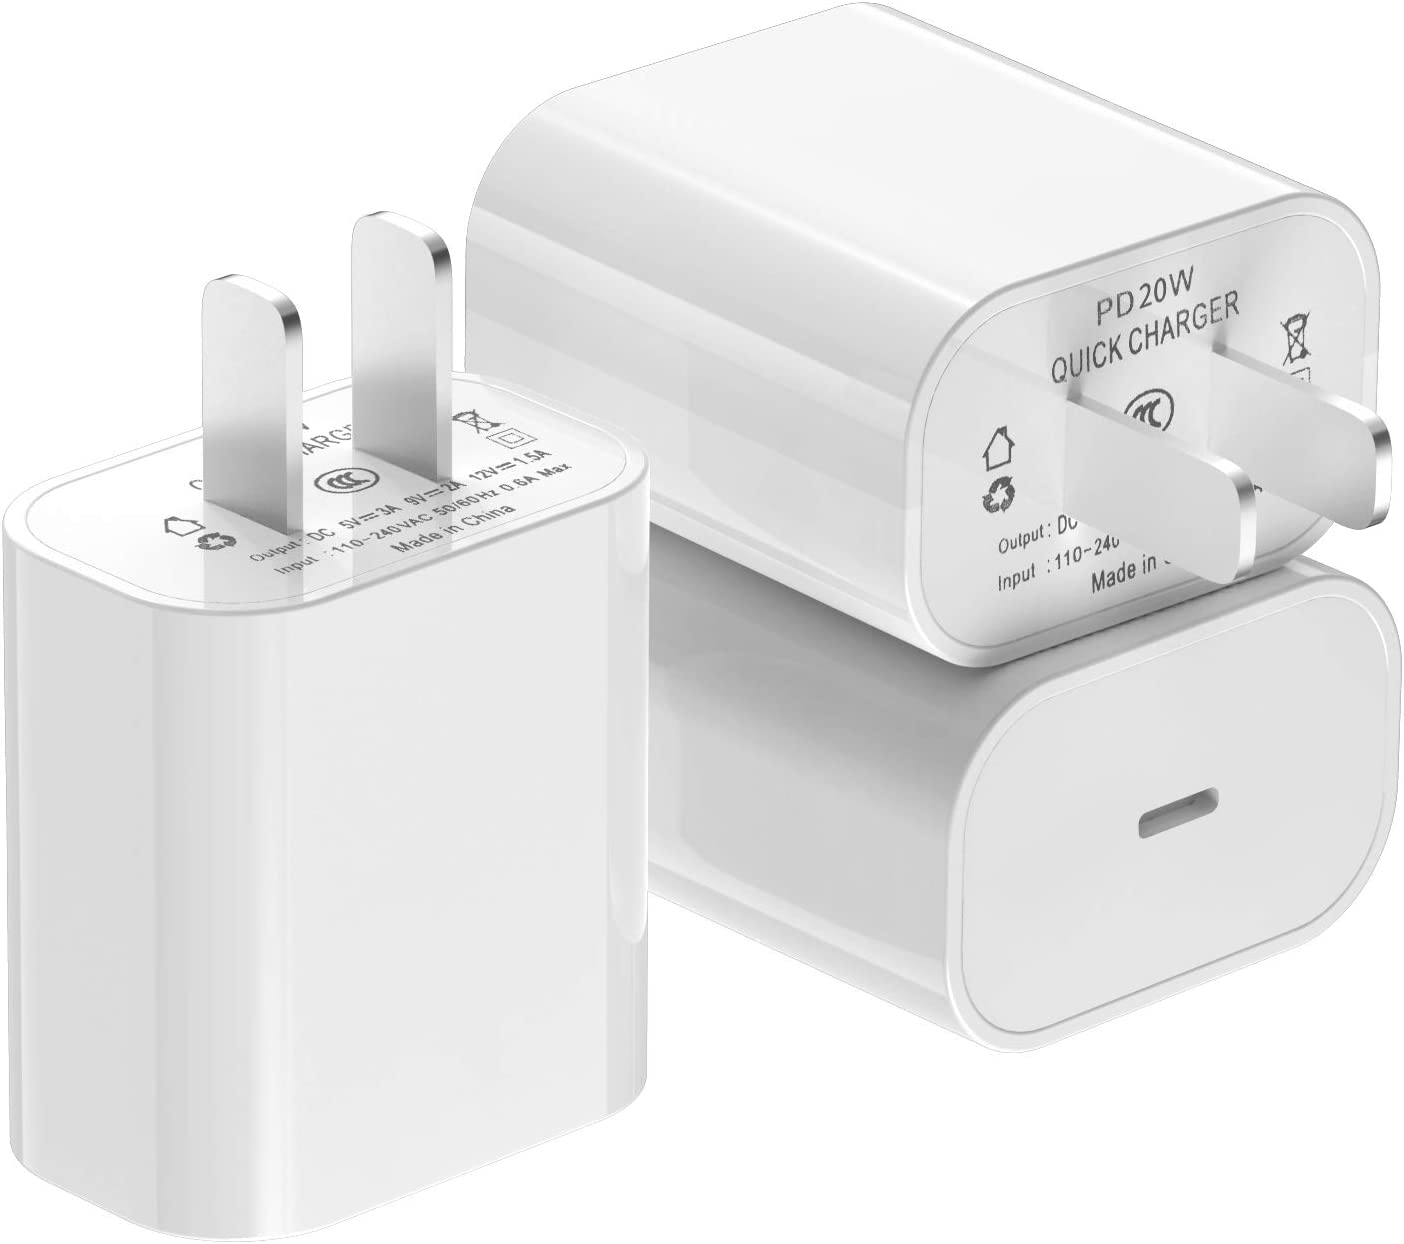 [Apple MFi Certified] iPhone Fast Charger 3Pack, iGENJUN 20W USB C Charger Wall Charger Block with PD 3.0, Compact USB C Power Adapter for iPhone 12/12 Pro/11, Galaxy, Pixel, AirPods Pro-White